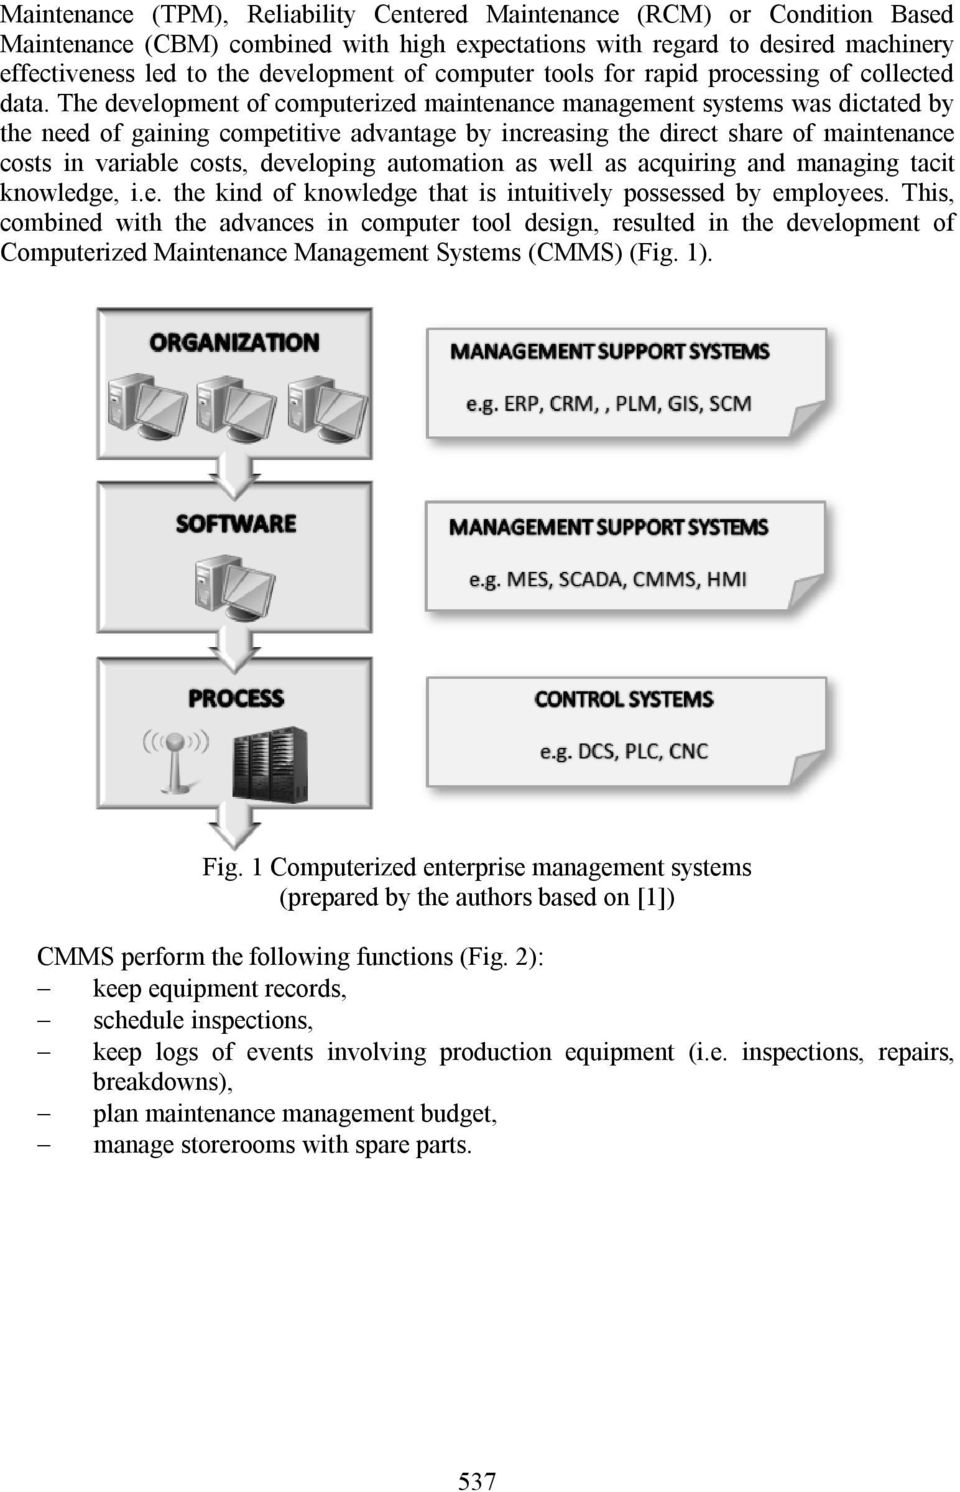 The development of computerized maintenance management systems was dictated by the need of gaining competitive advantage by increasing the direct share of maintenance costs in variable costs,